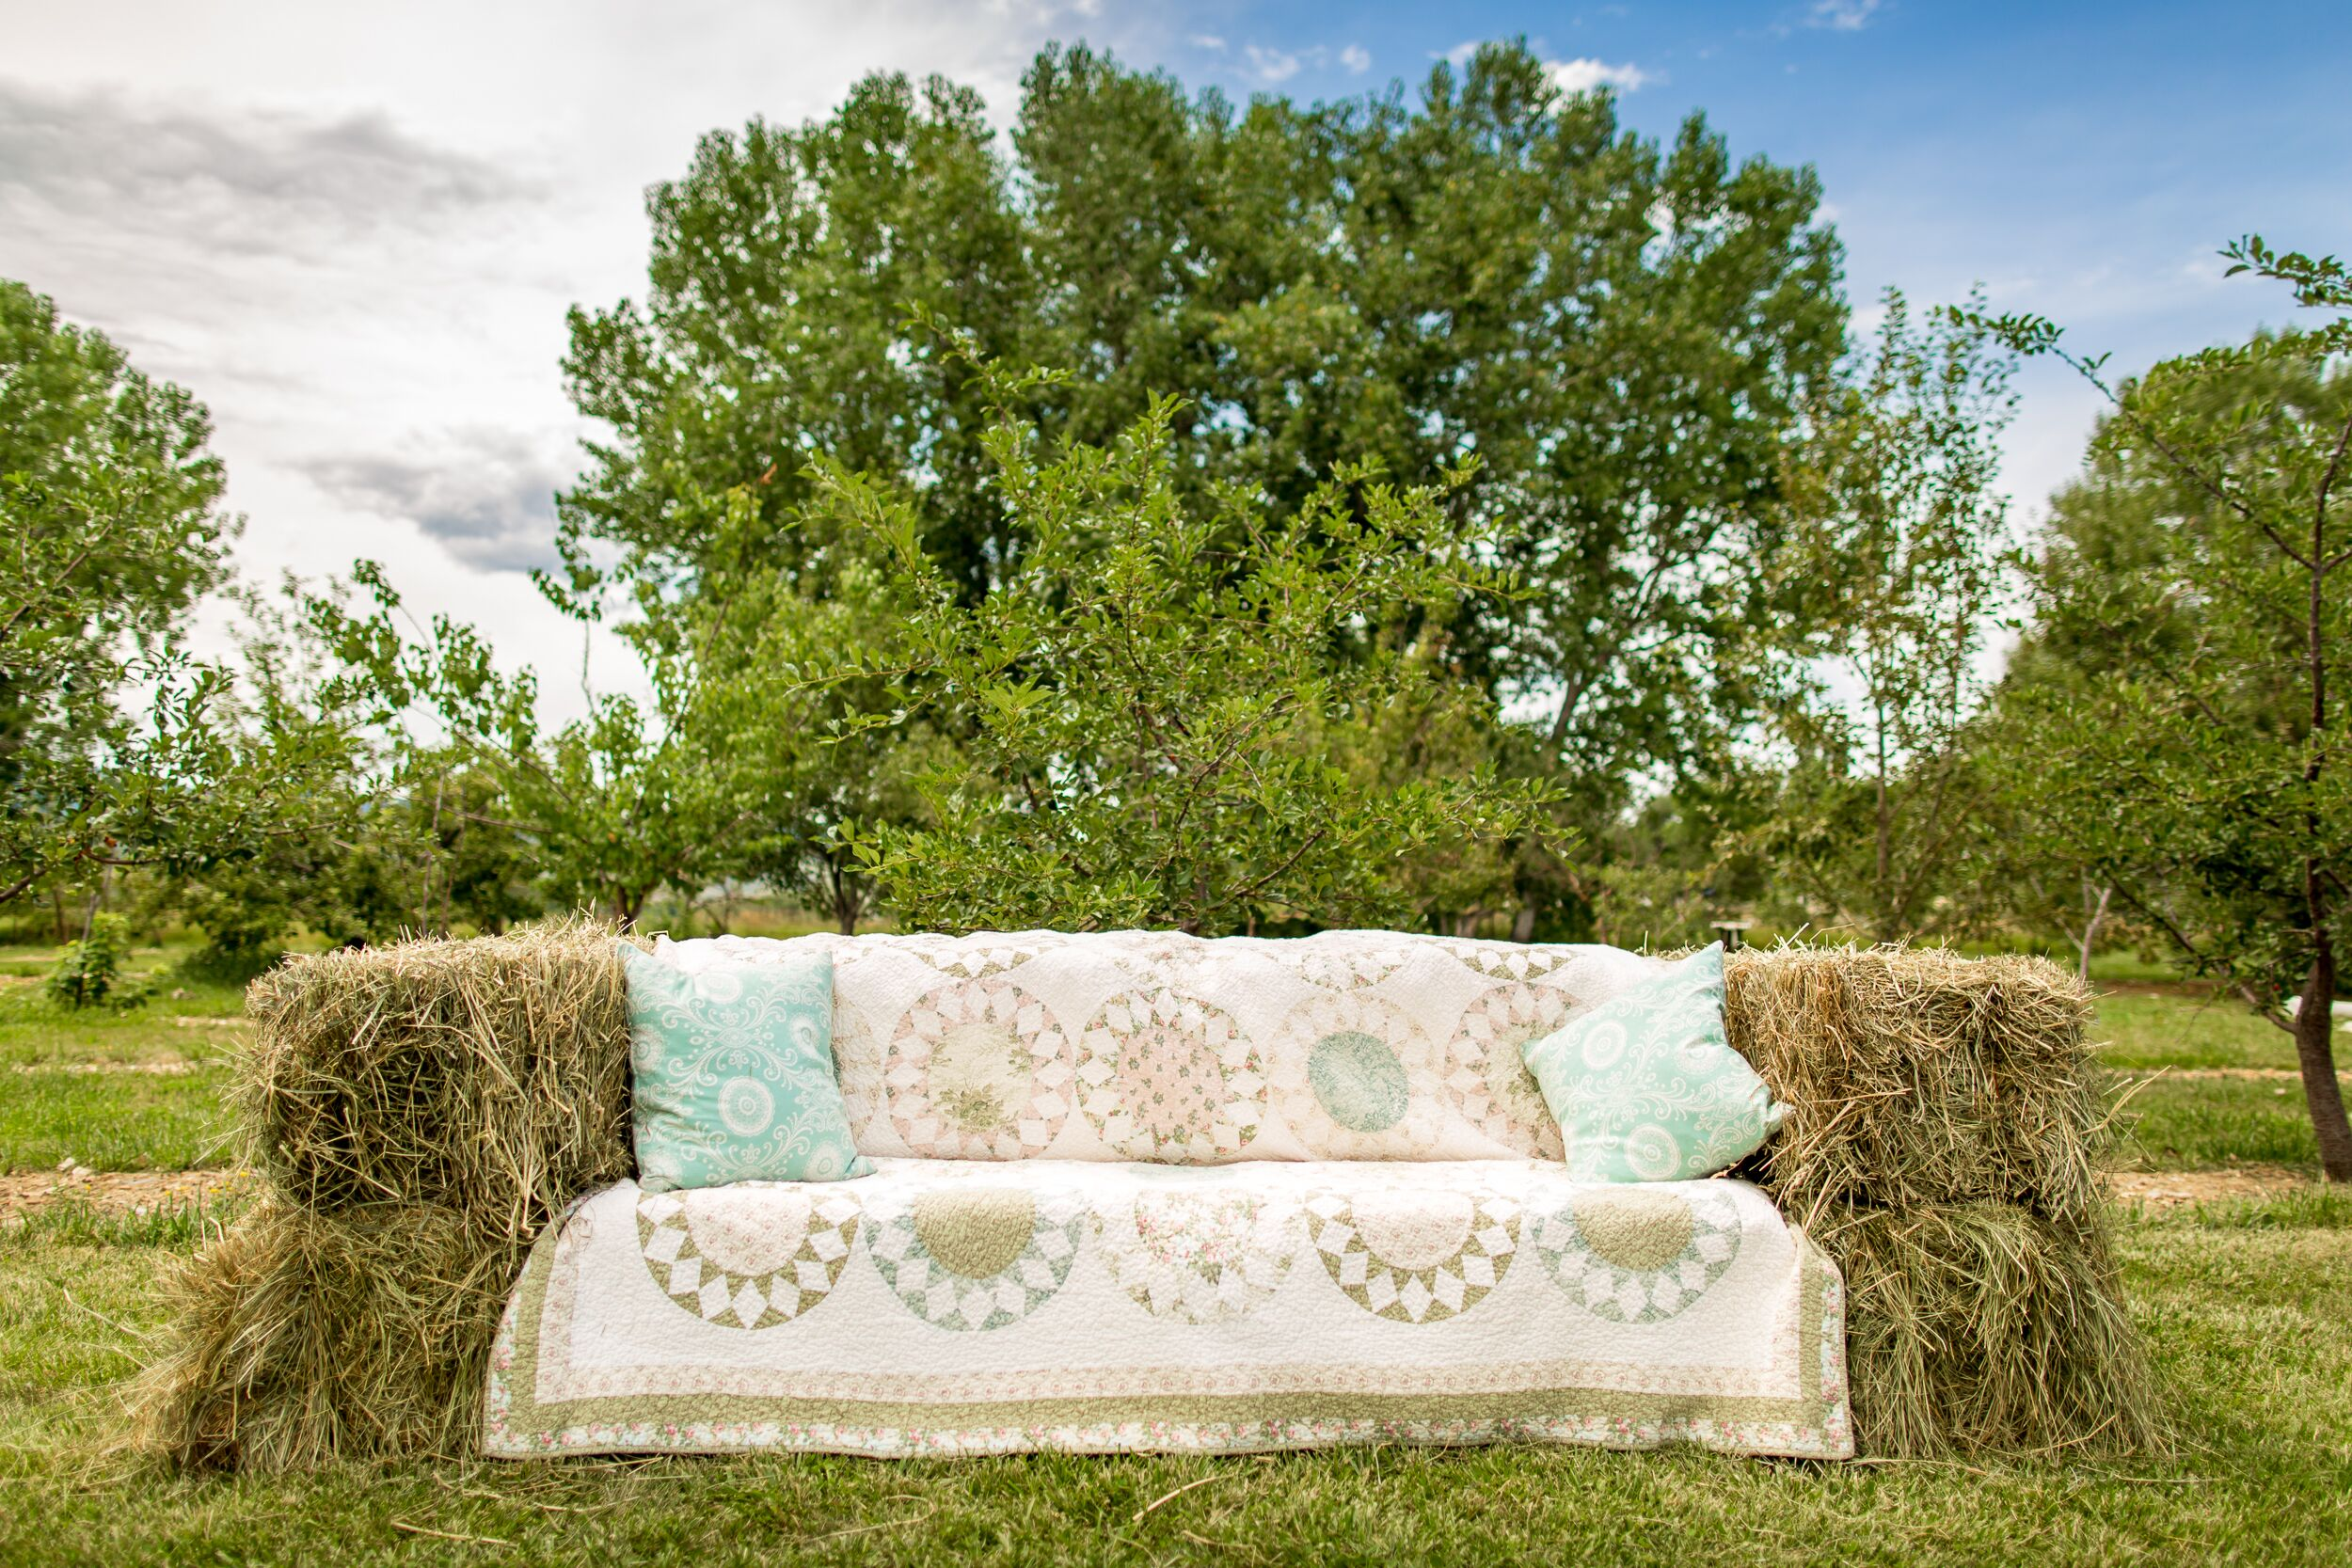 hay bale couch wedding lounge furniture. Black Bedroom Furniture Sets. Home Design Ideas